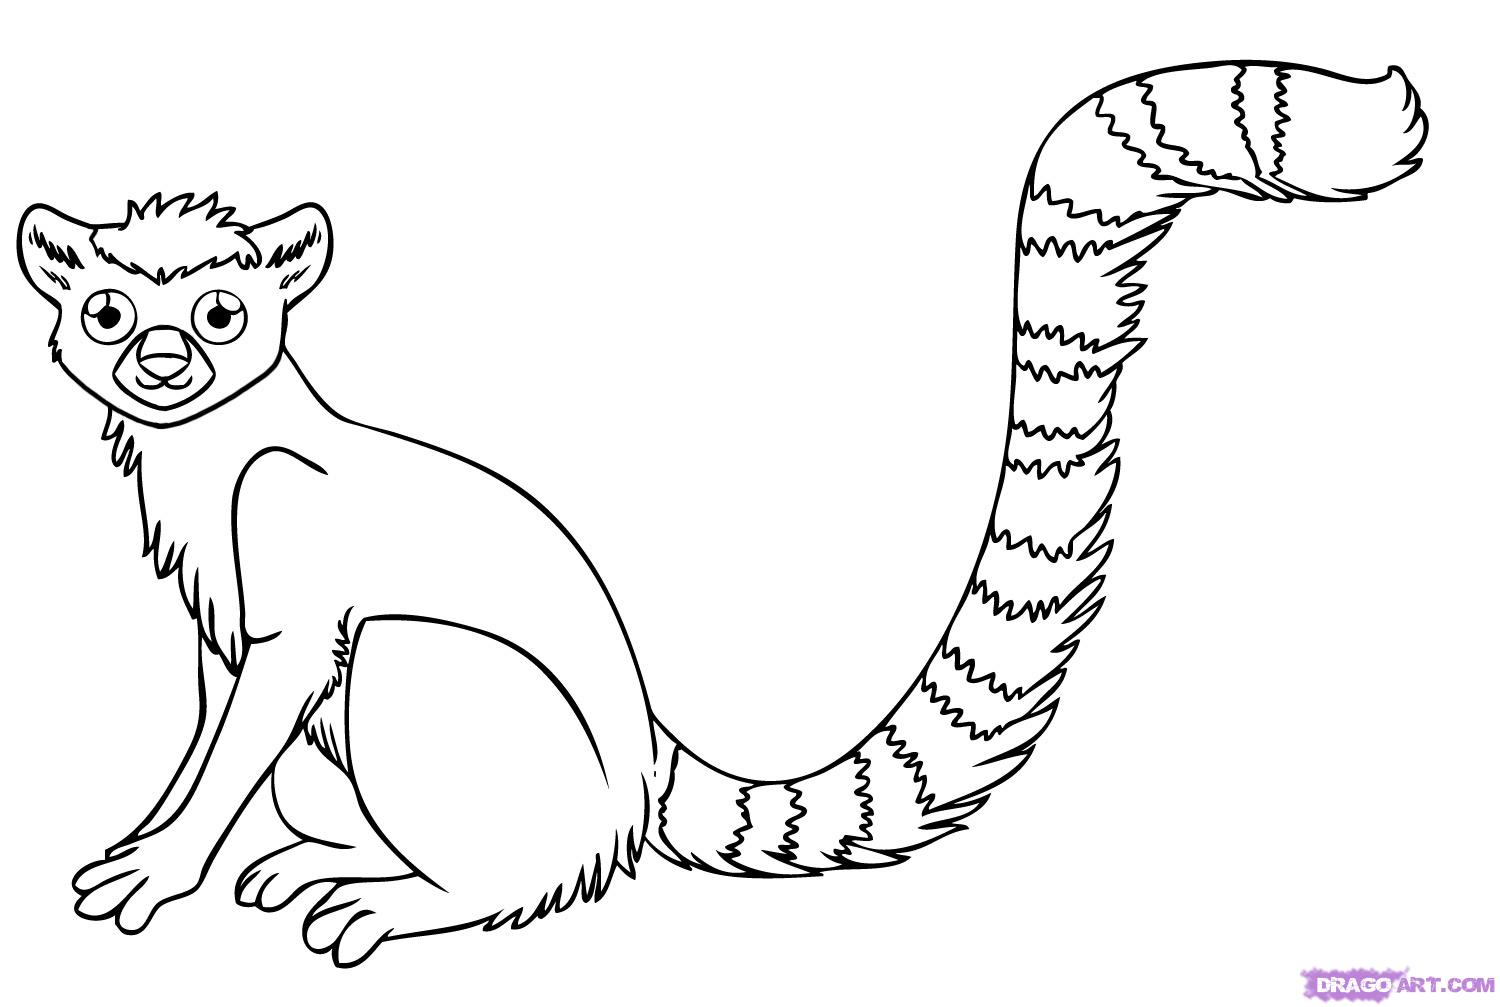 Drawn rainforest animated Step Lemur step how 7